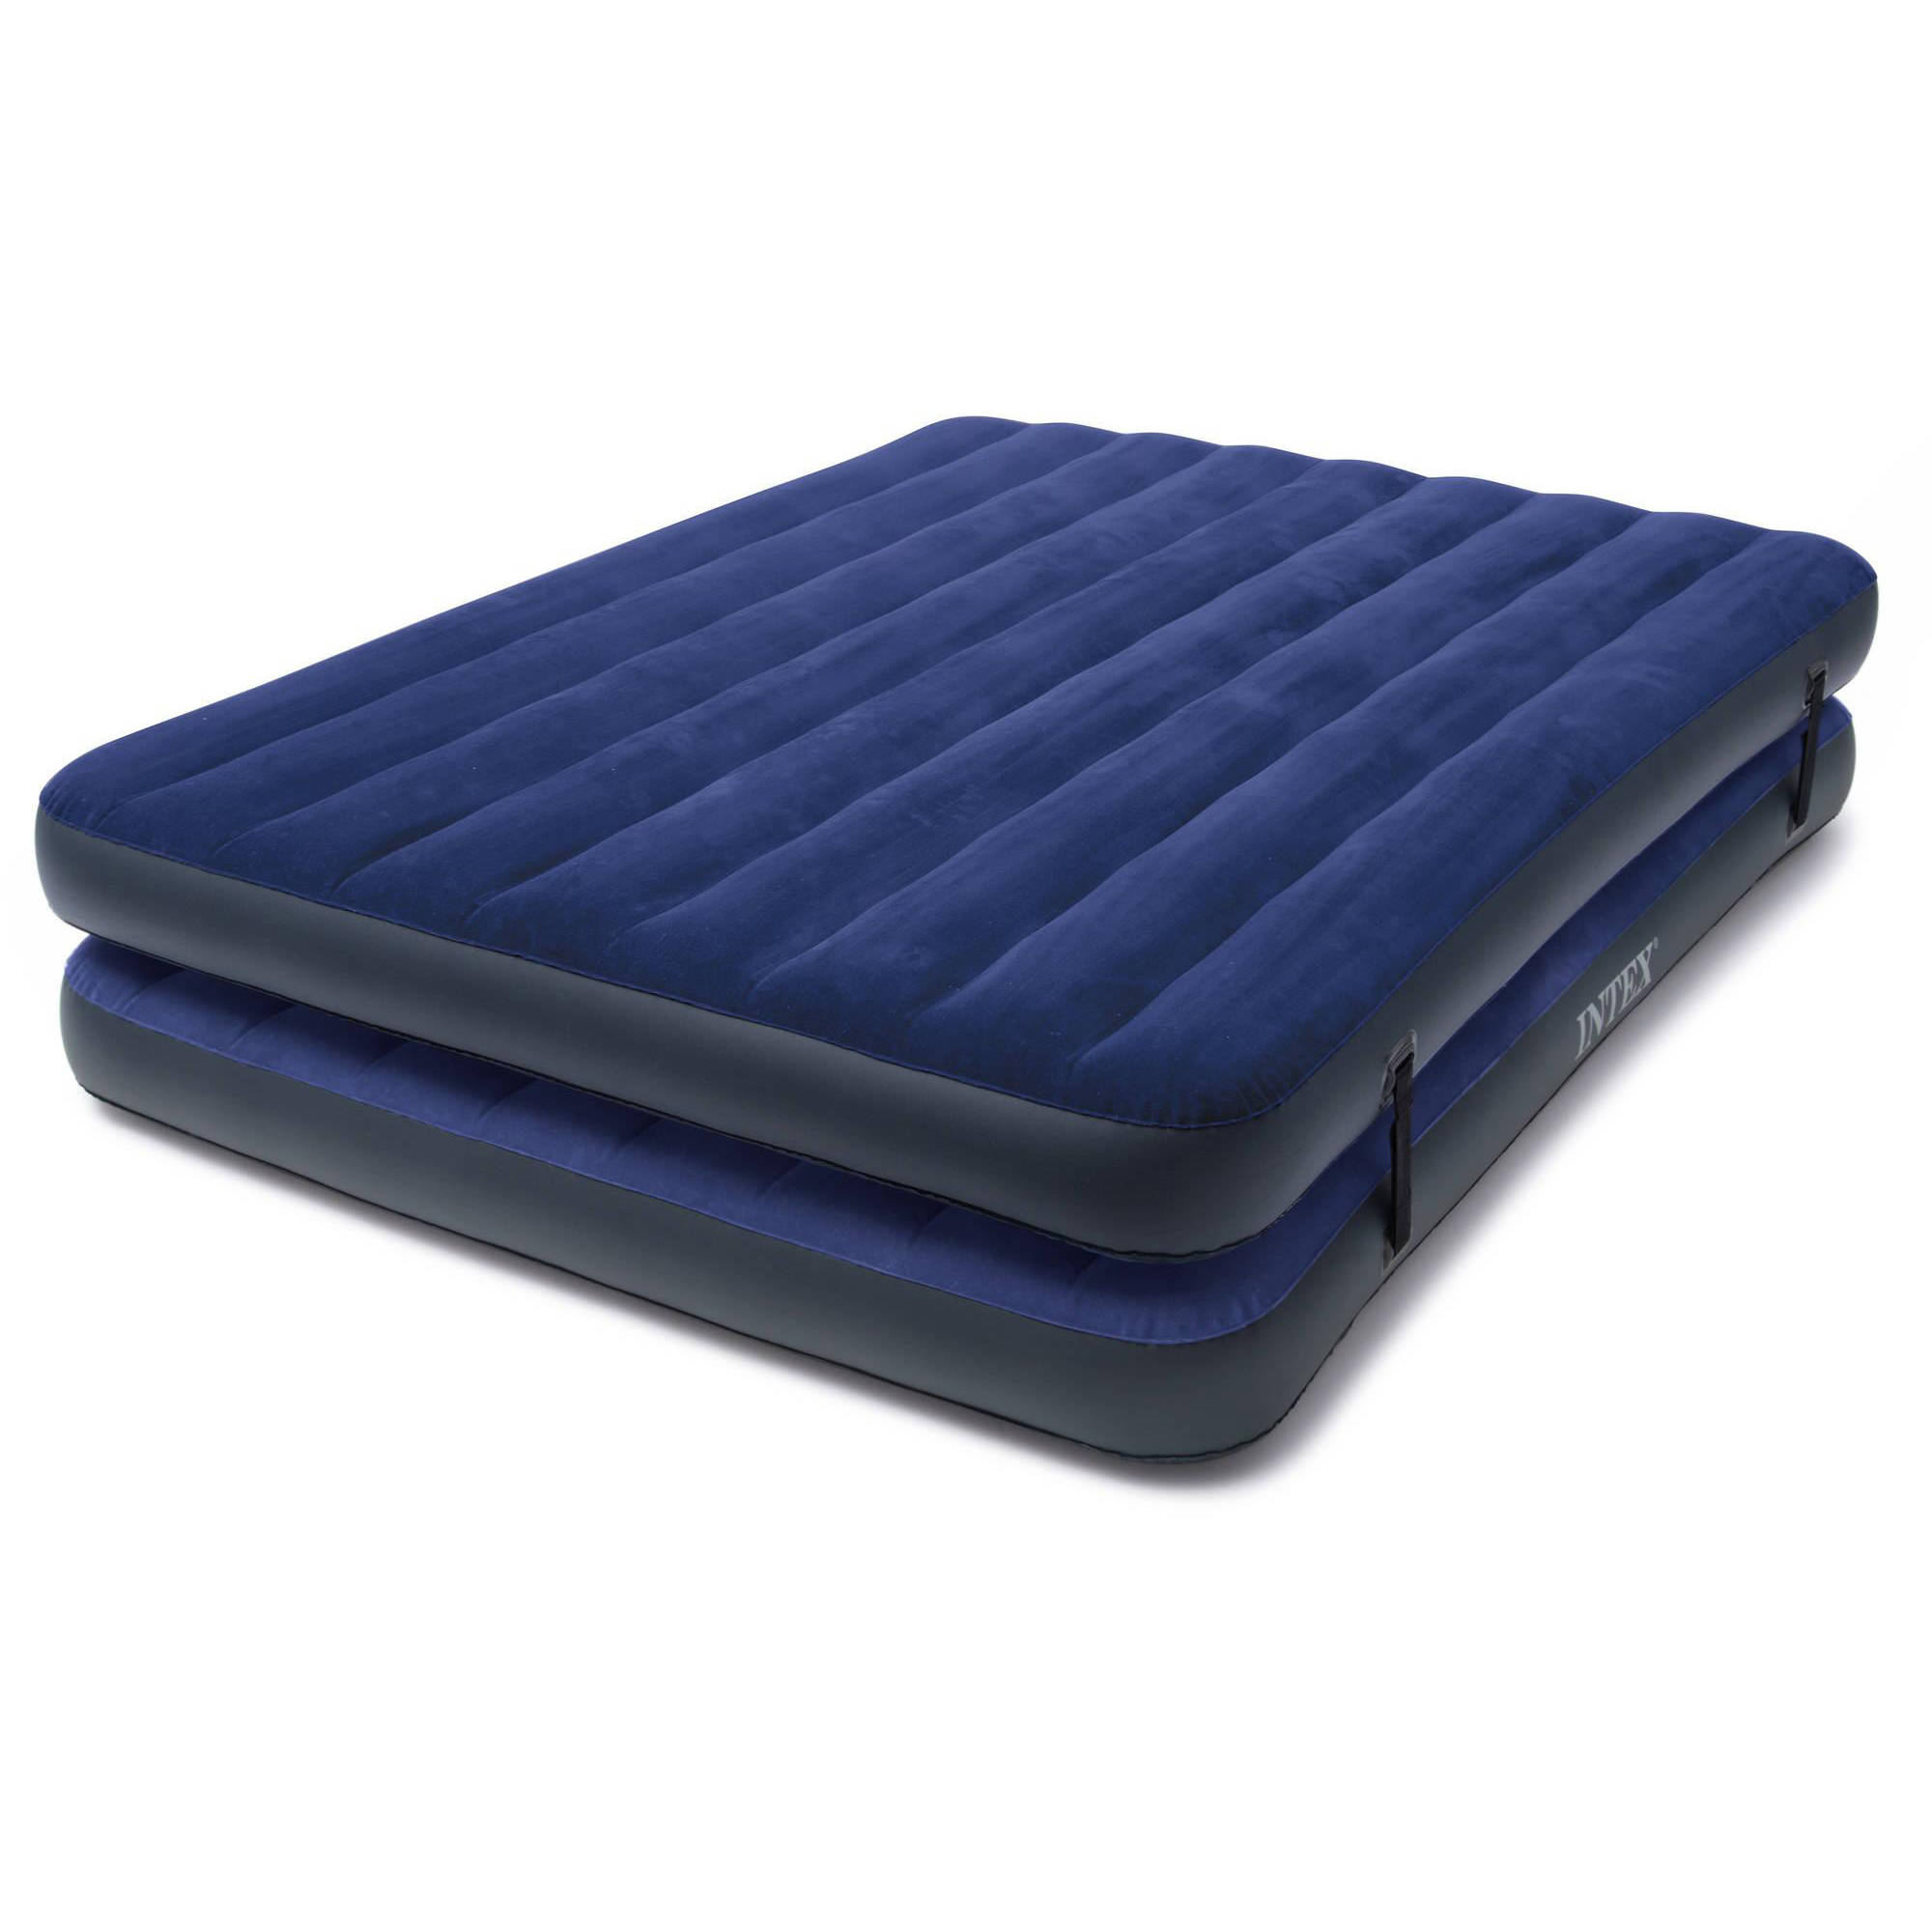 Intex Queen 2-in-1 Guest Airbed Mattress with Hand Pump